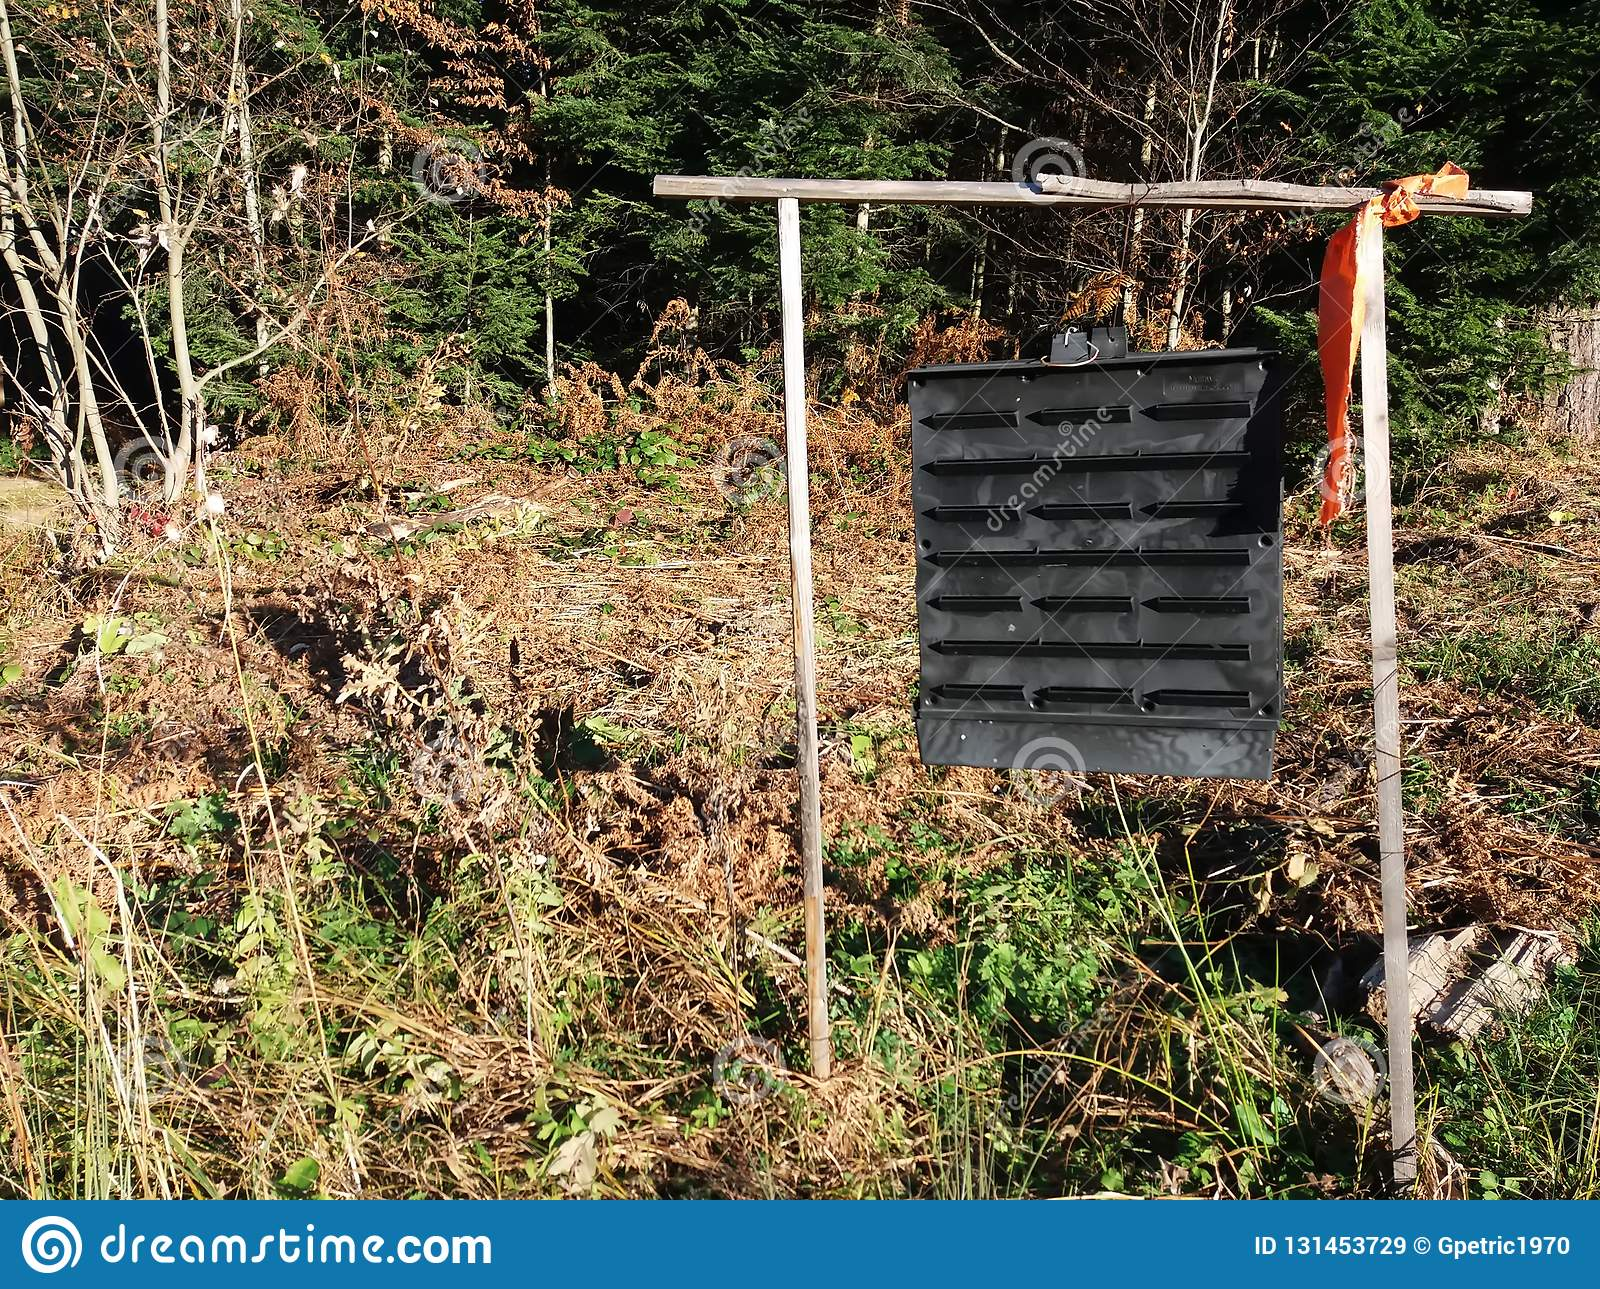 hight resolution of box with insect pheromones in the forest trap for great spruce bark beetle